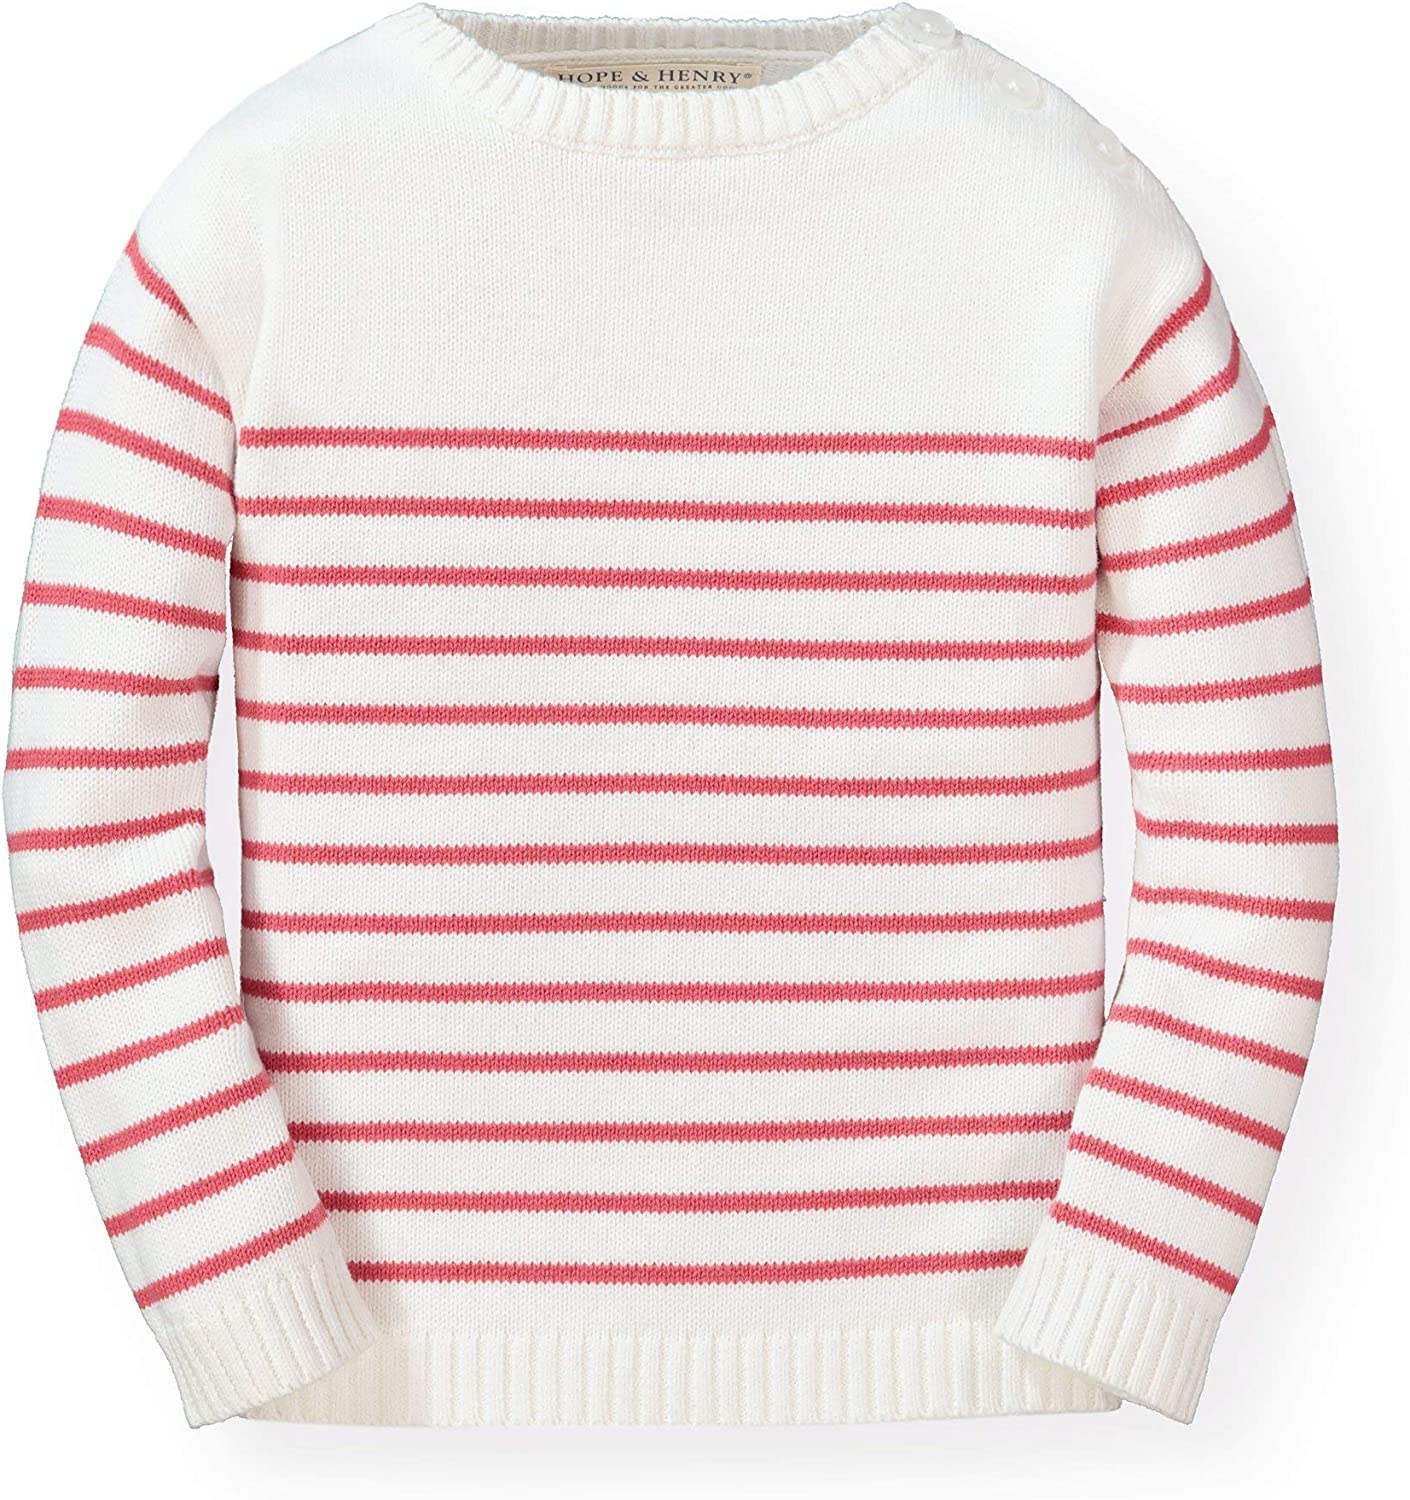 Outlet ☆ Free Shipping Hope Henry Girls' Long Sleeve Sweater French 5 popular Pullover Look